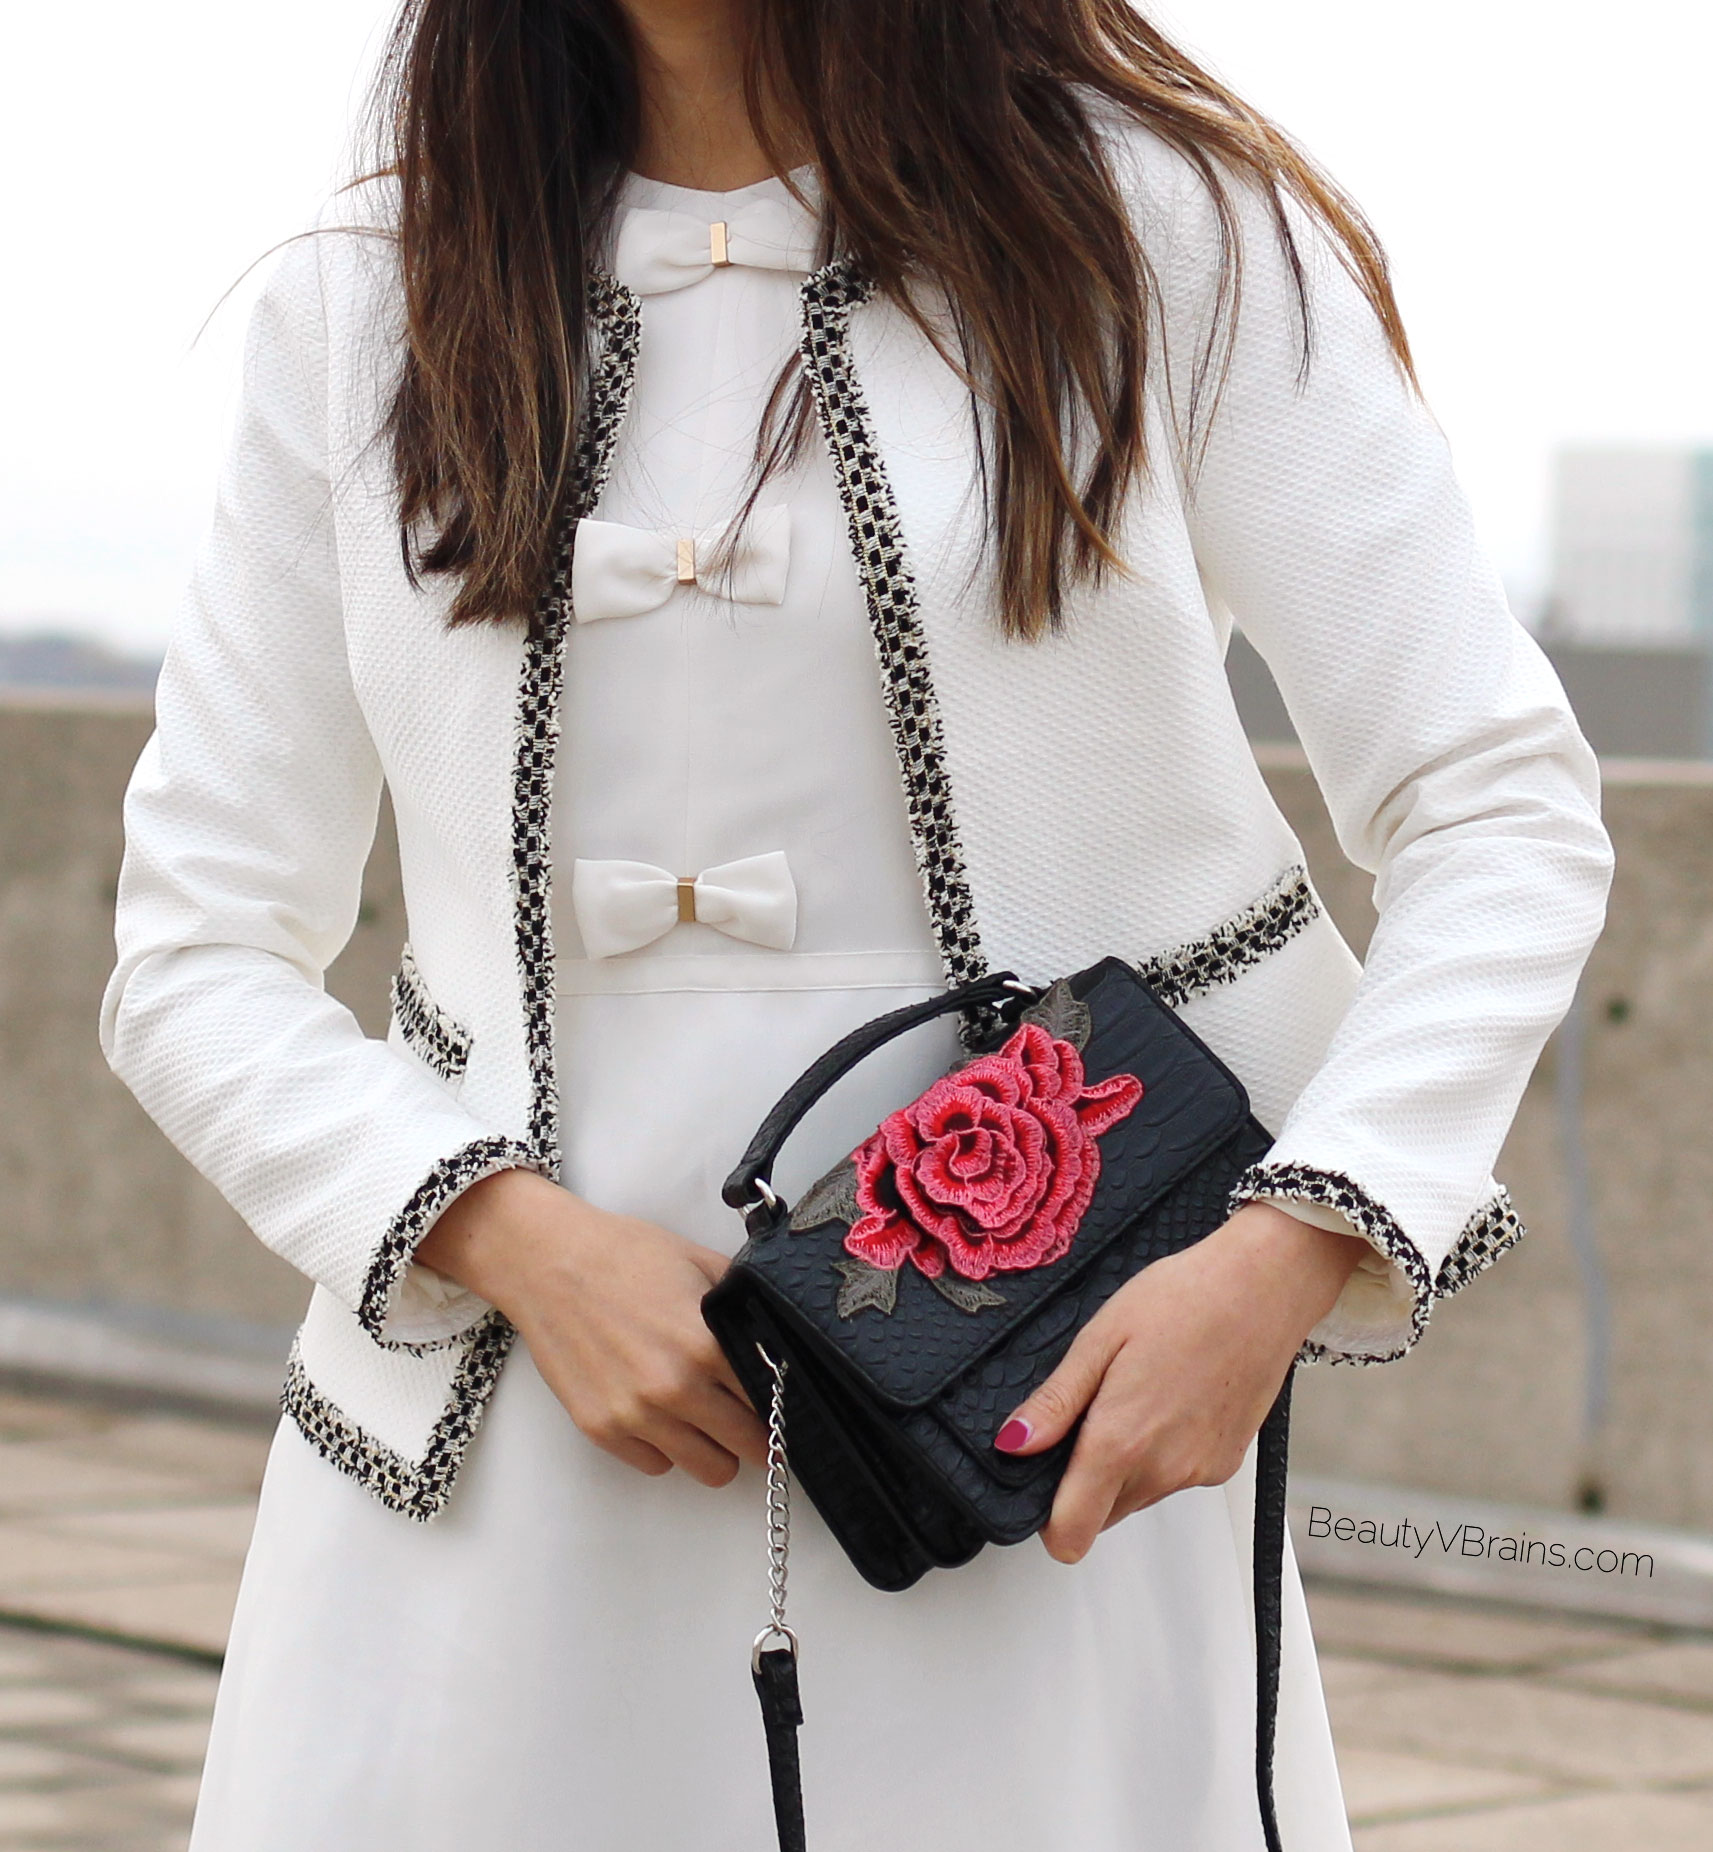 White tweed trim jacket and dress with bow detail